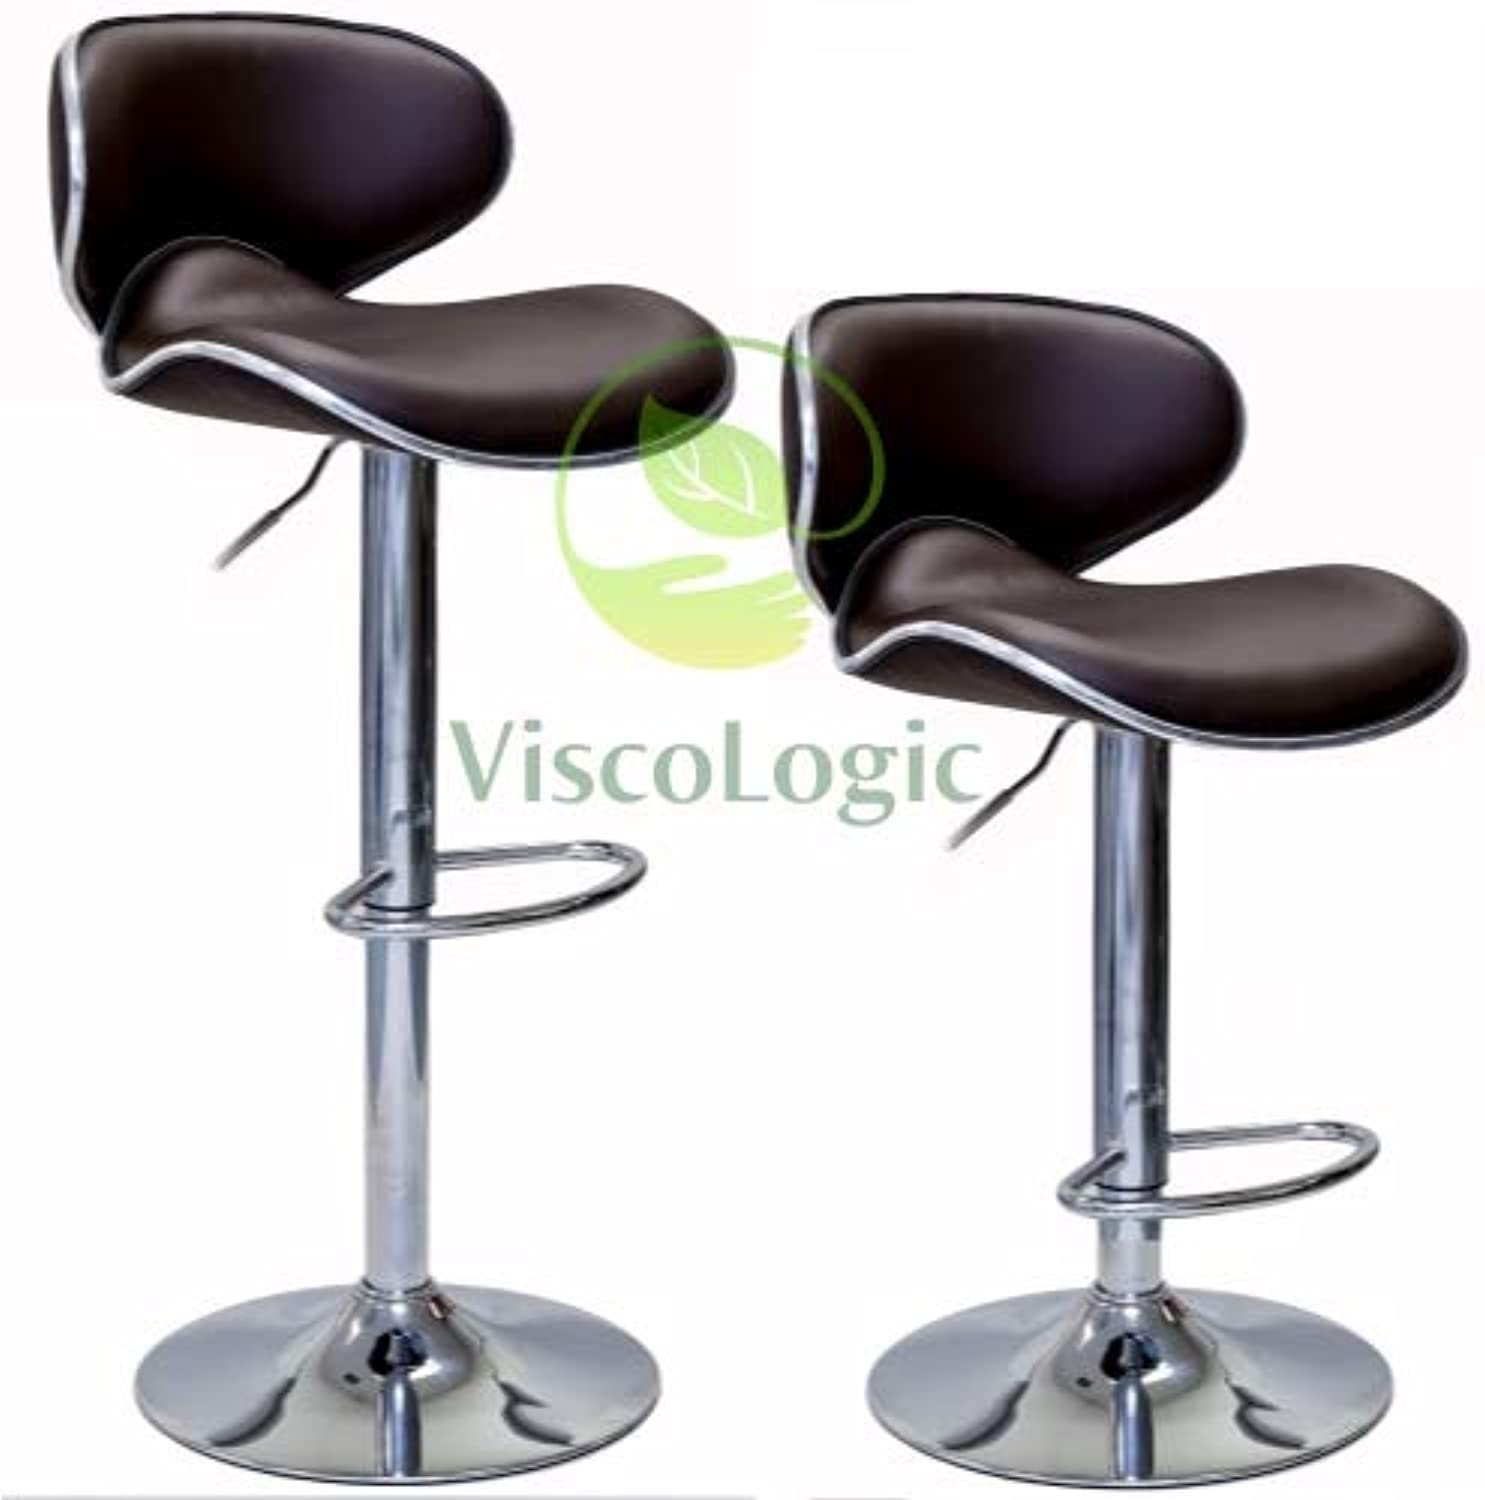 ViscoLogic Series Oasis Height Adjustable Leatherette Saddle Style Seat and High Back Rest 360 Swivel 24 to 33 inch Bar Stool with Chrome Pole & Base with Hard Floor Predection Plastic (Set of 2 Stools - Brown)